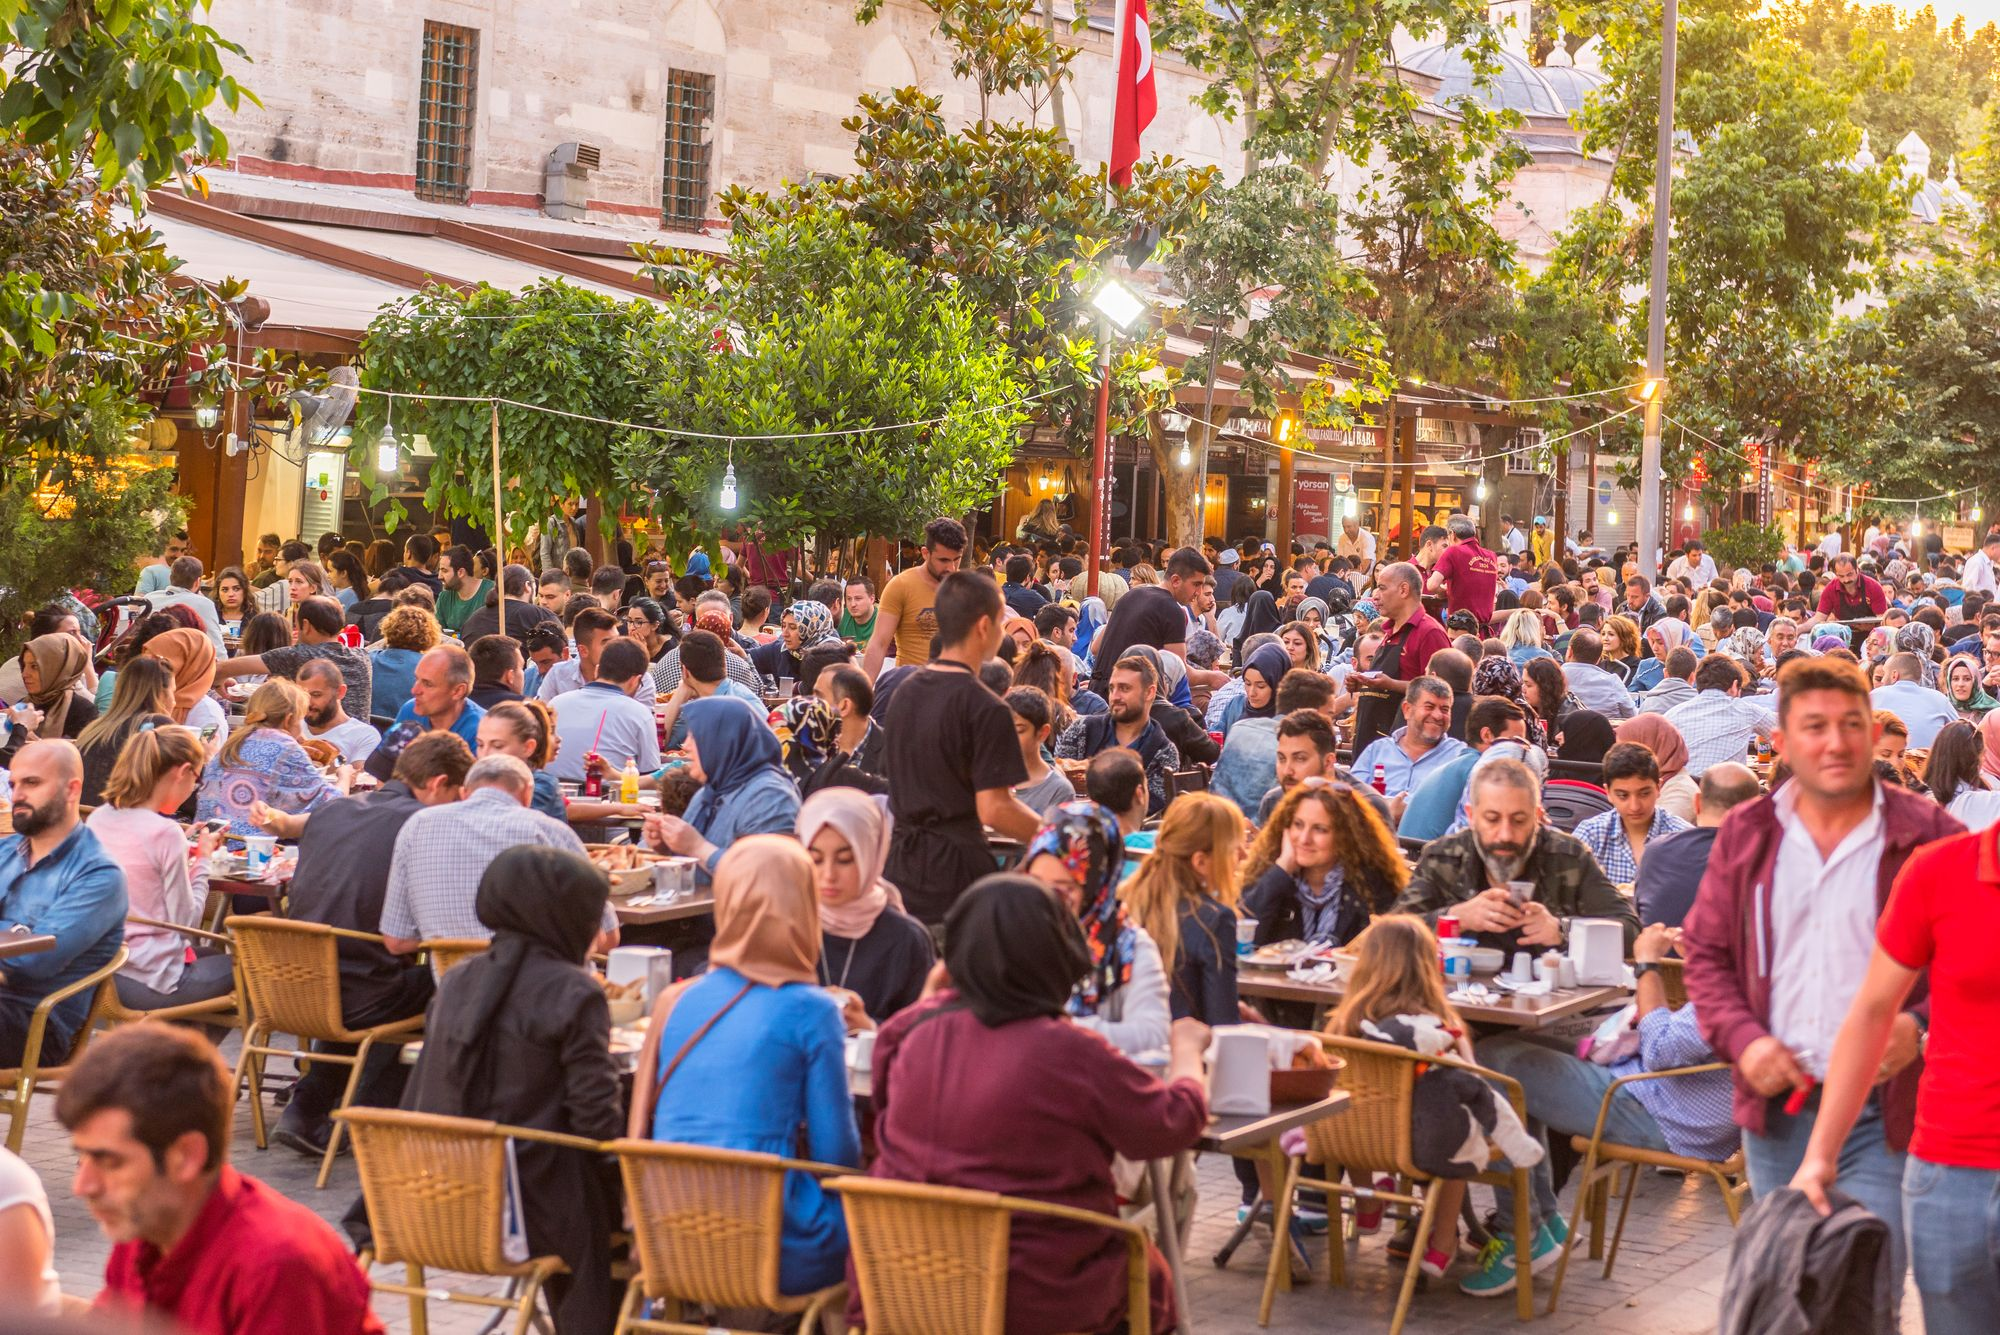 Public iftar meals in Istanbul